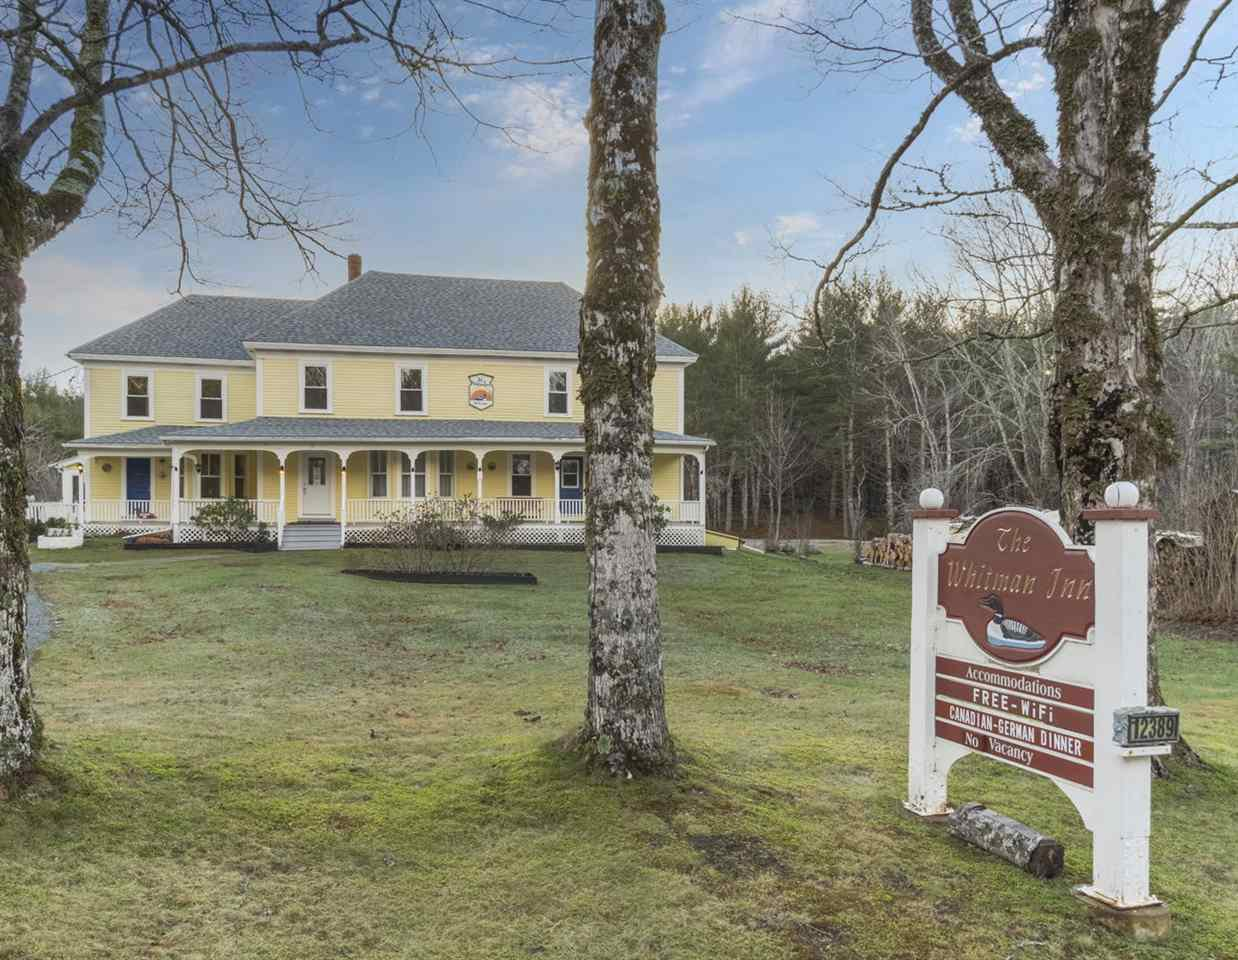 Main Photo: 12389 Highway 8 in Kempt: 406-Queens County Residential for sale (South Shore)  : MLS®# 202025229